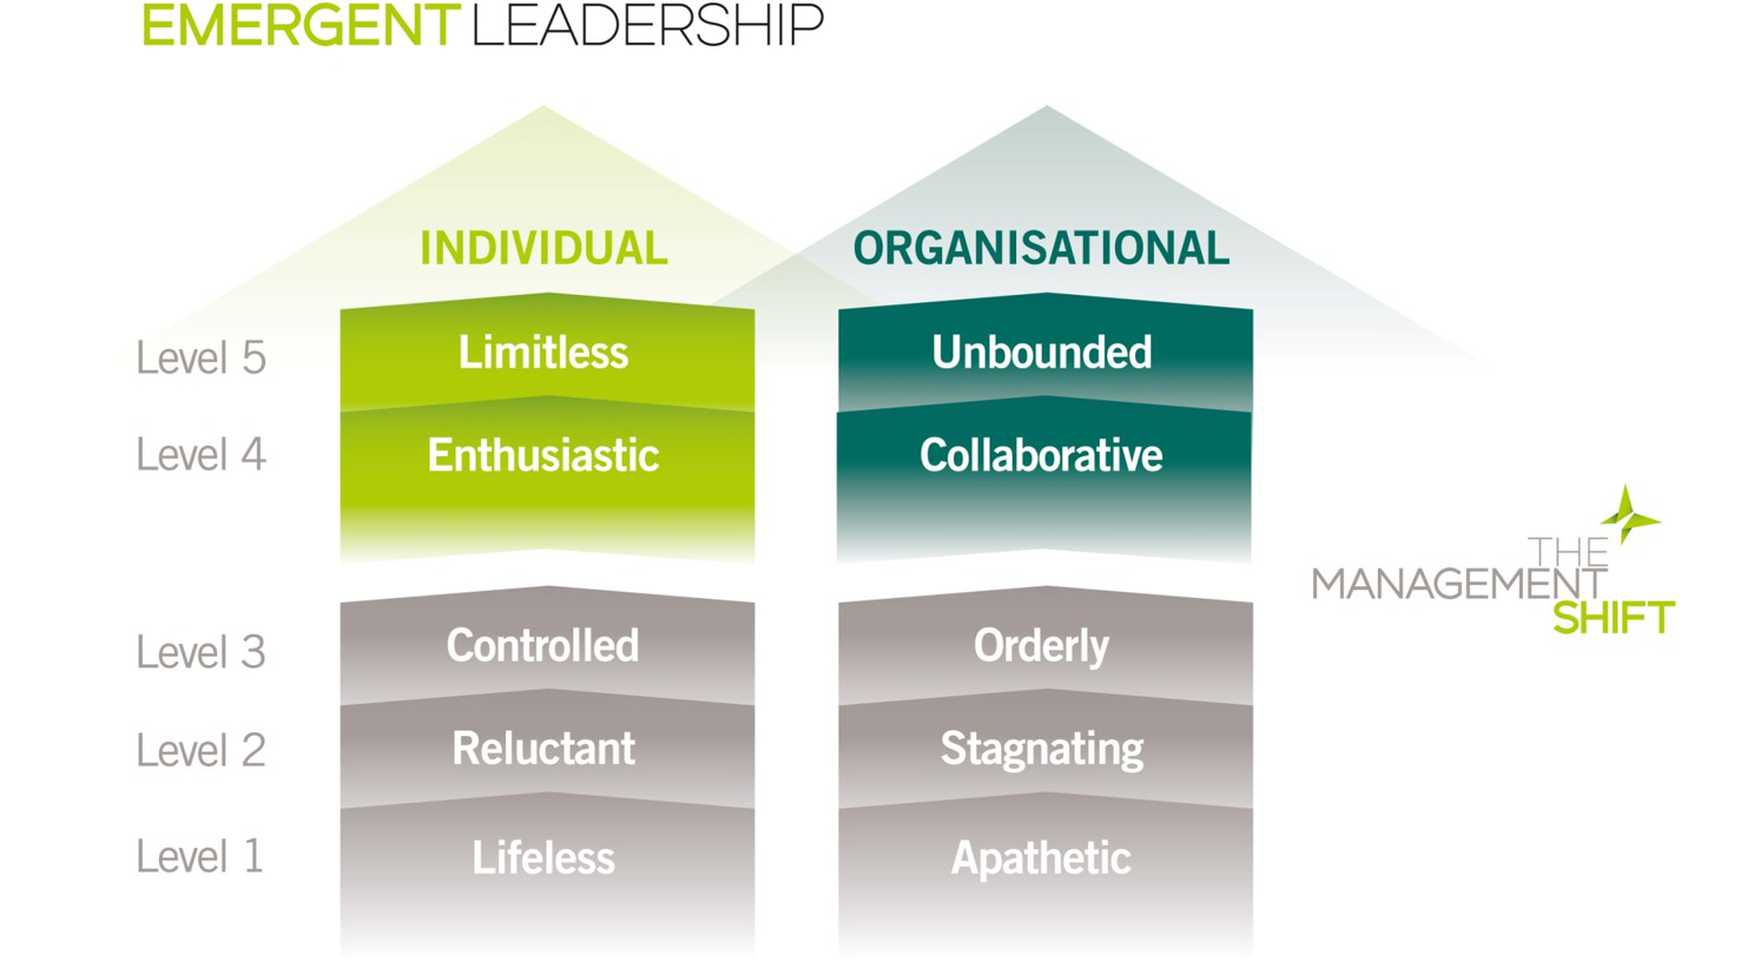 Emergent Leadership - The Management Shift